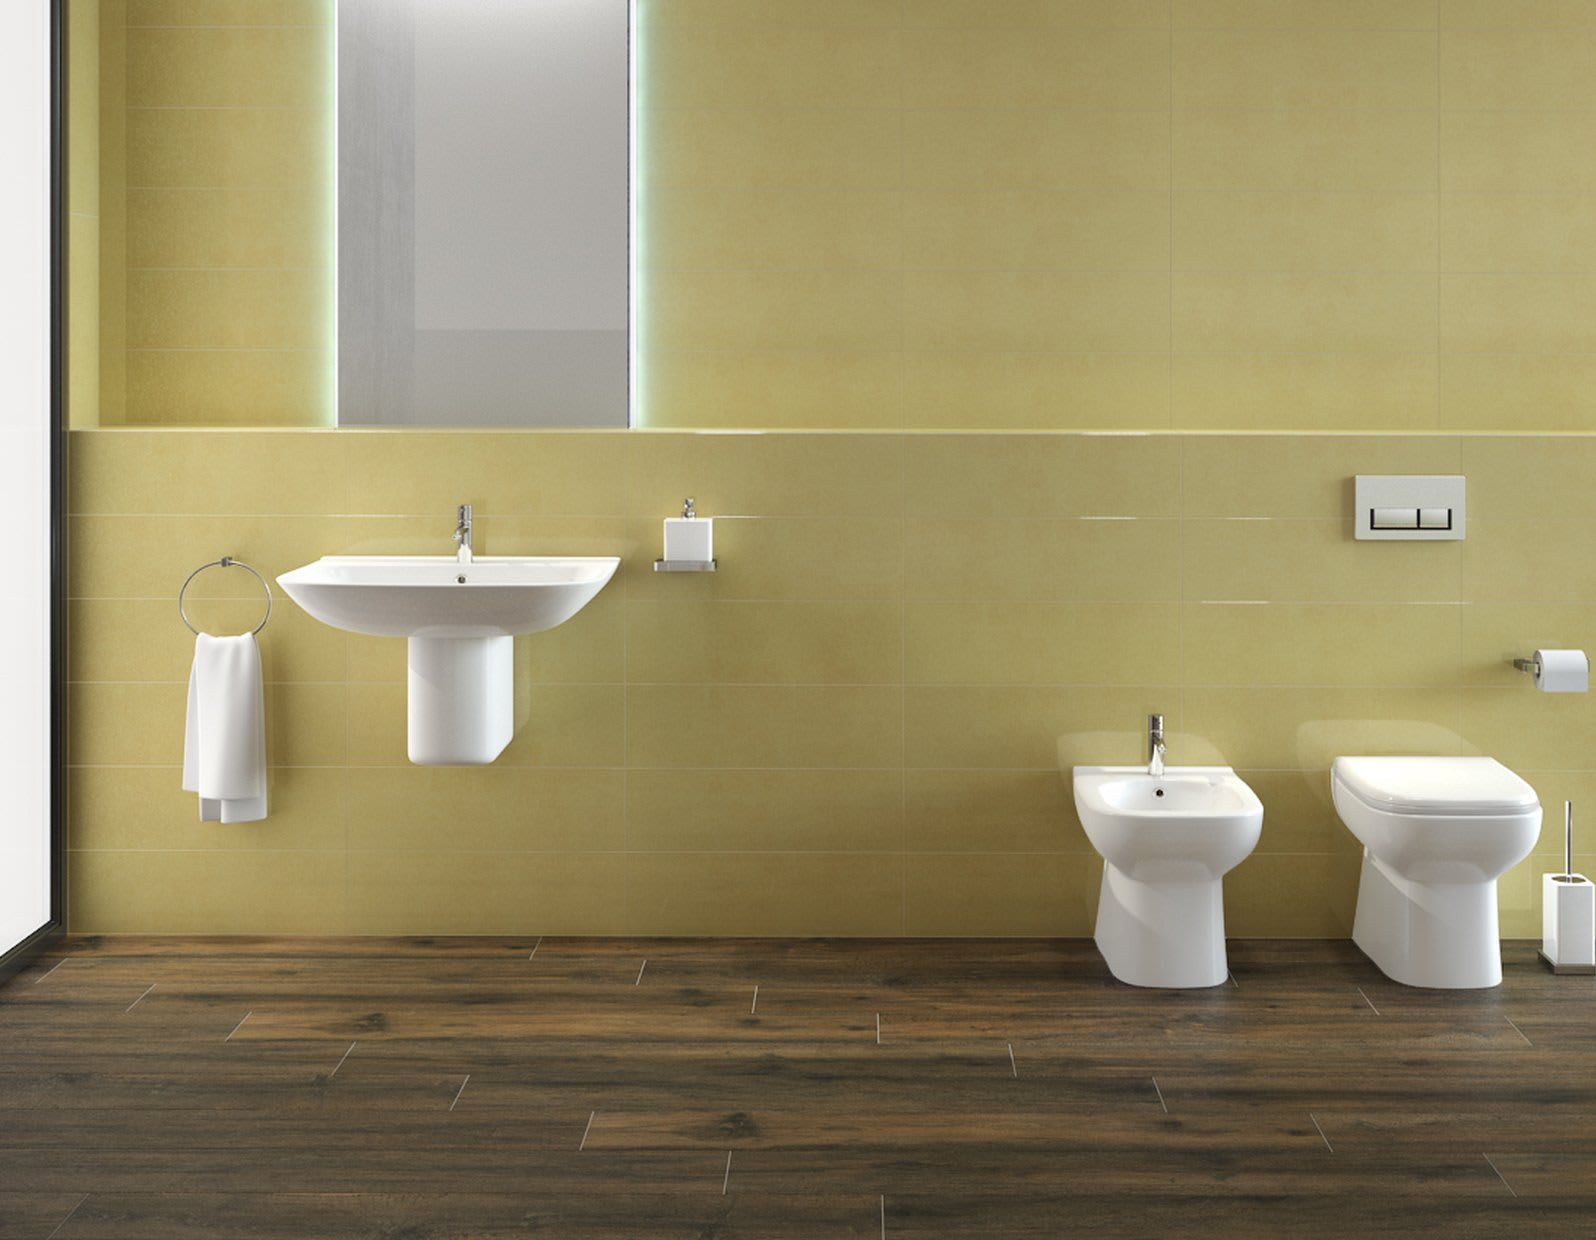 Bathroom Clearance Outlet Bathroom Fixtures And Fittings In Bedford Mk43 0at